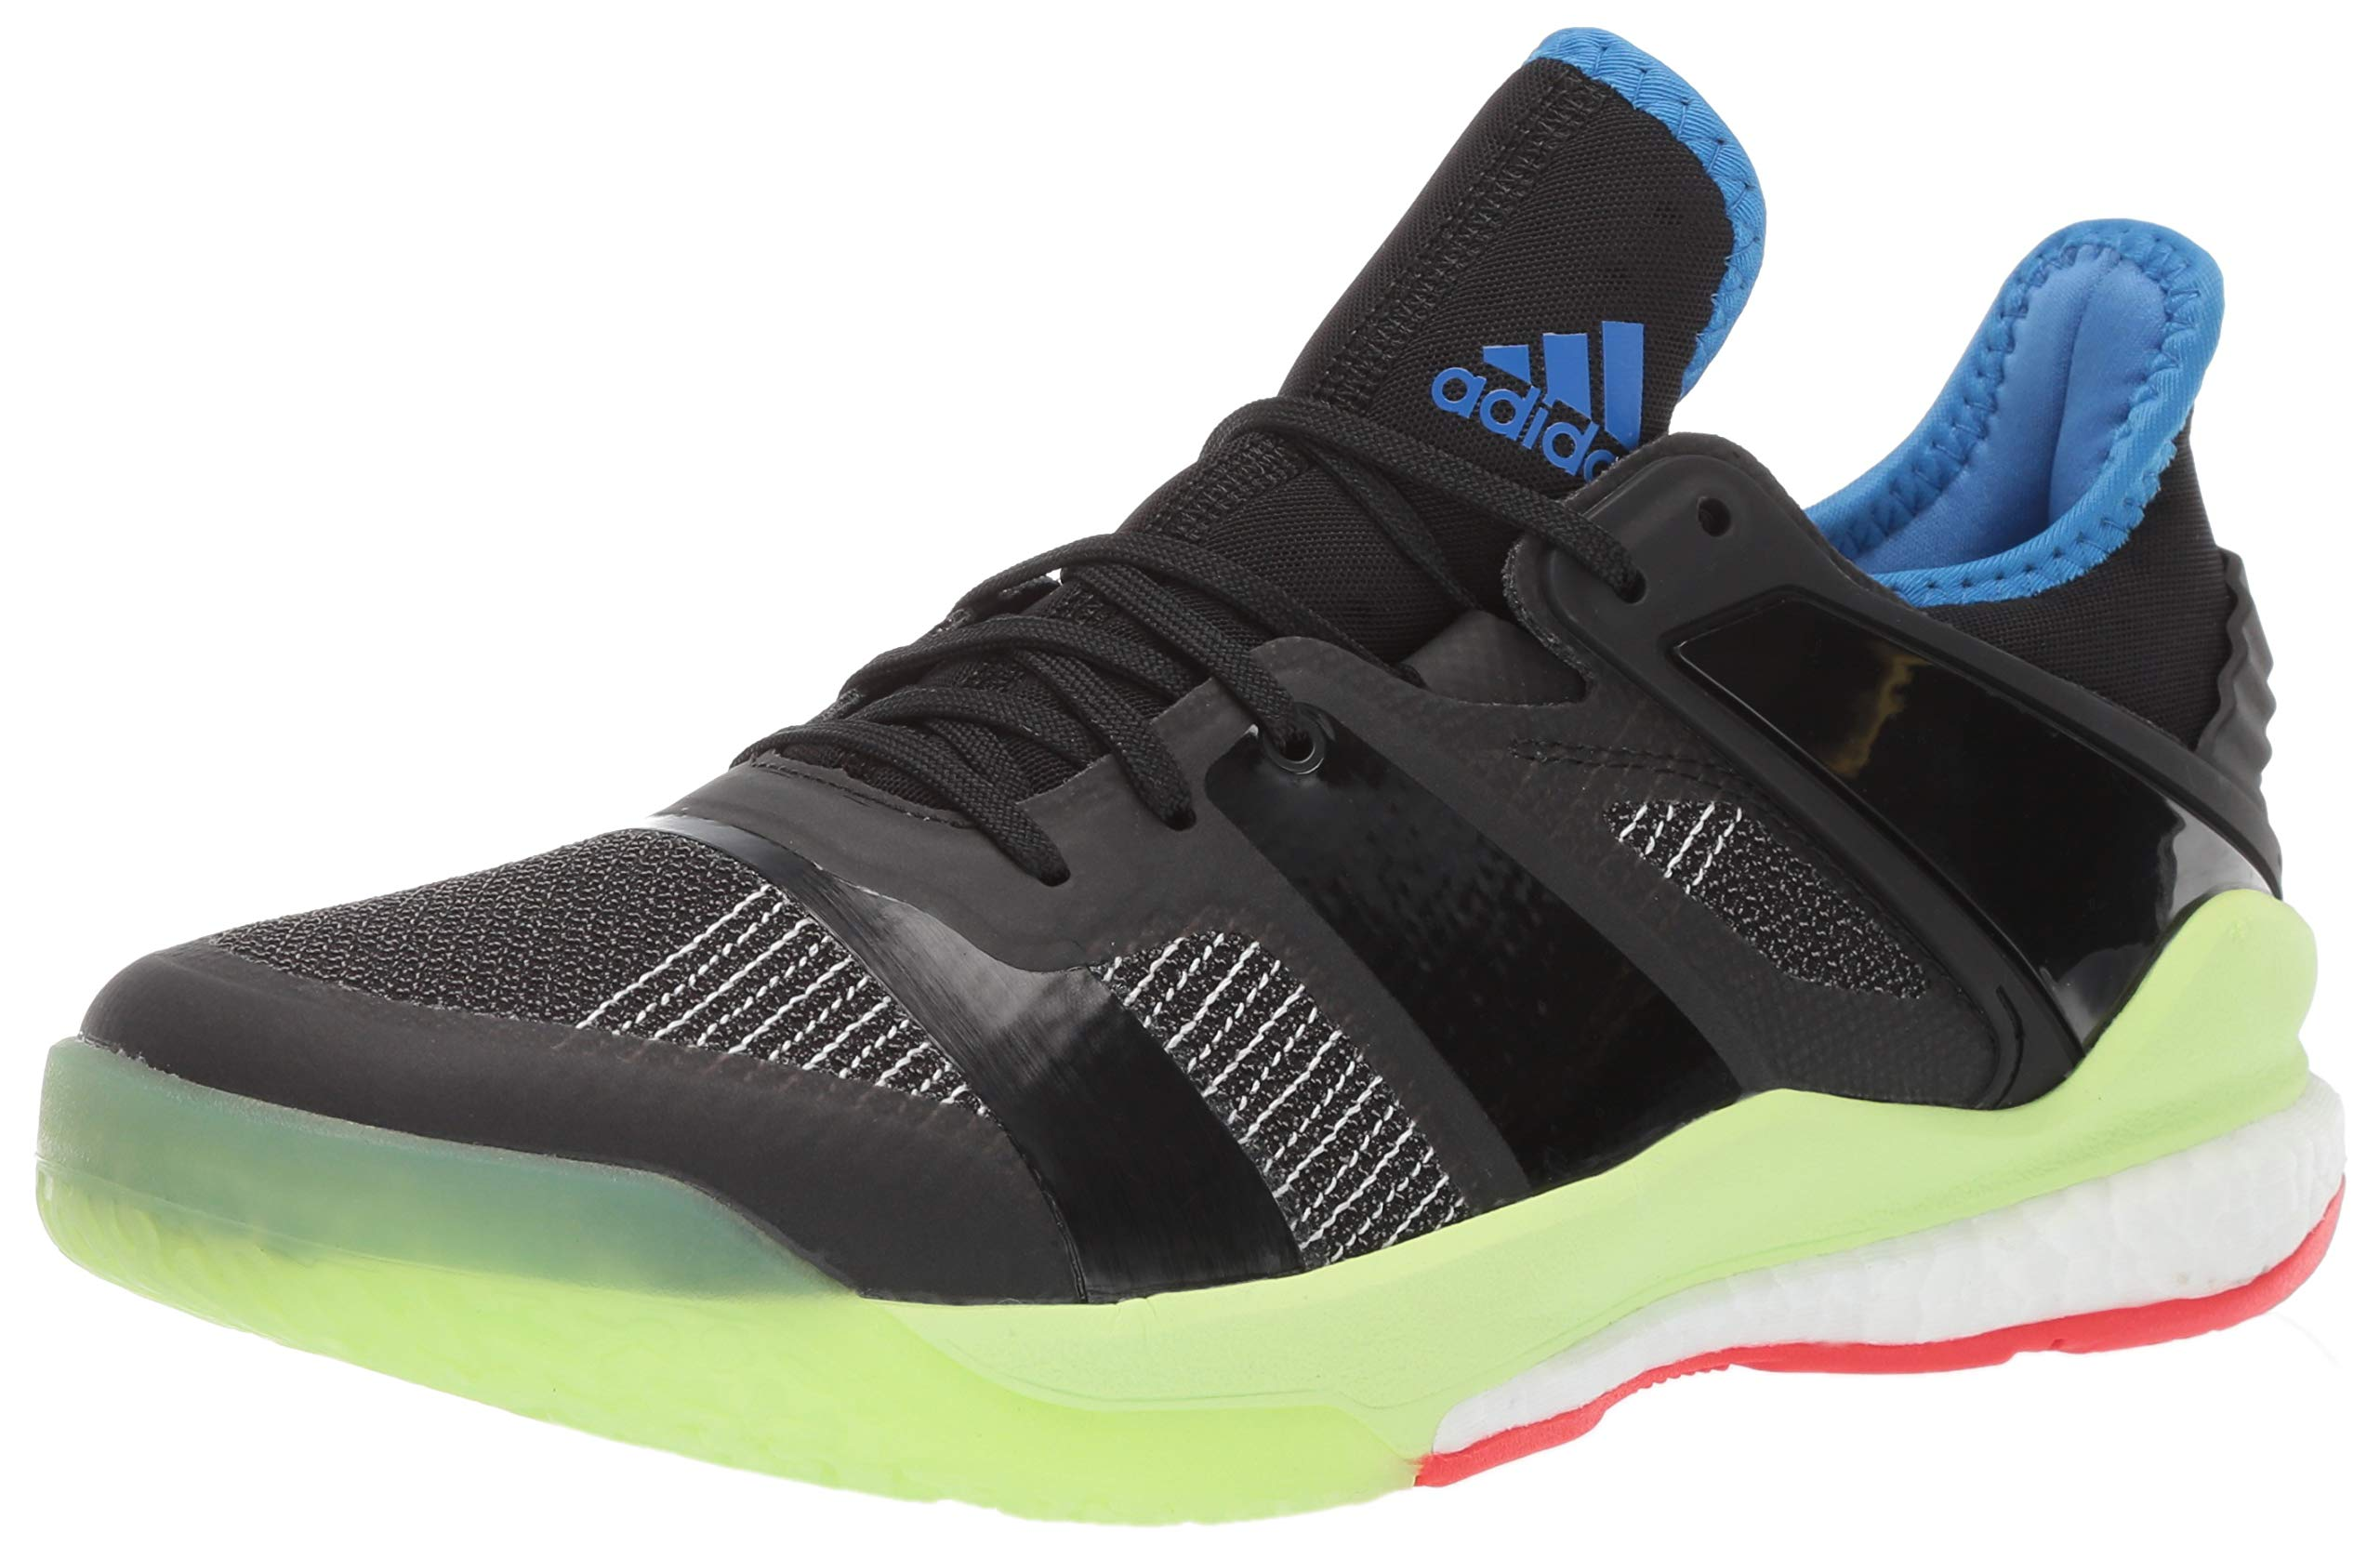 adidas Men's Stabil X, Black/Yellow, 8.5 M US